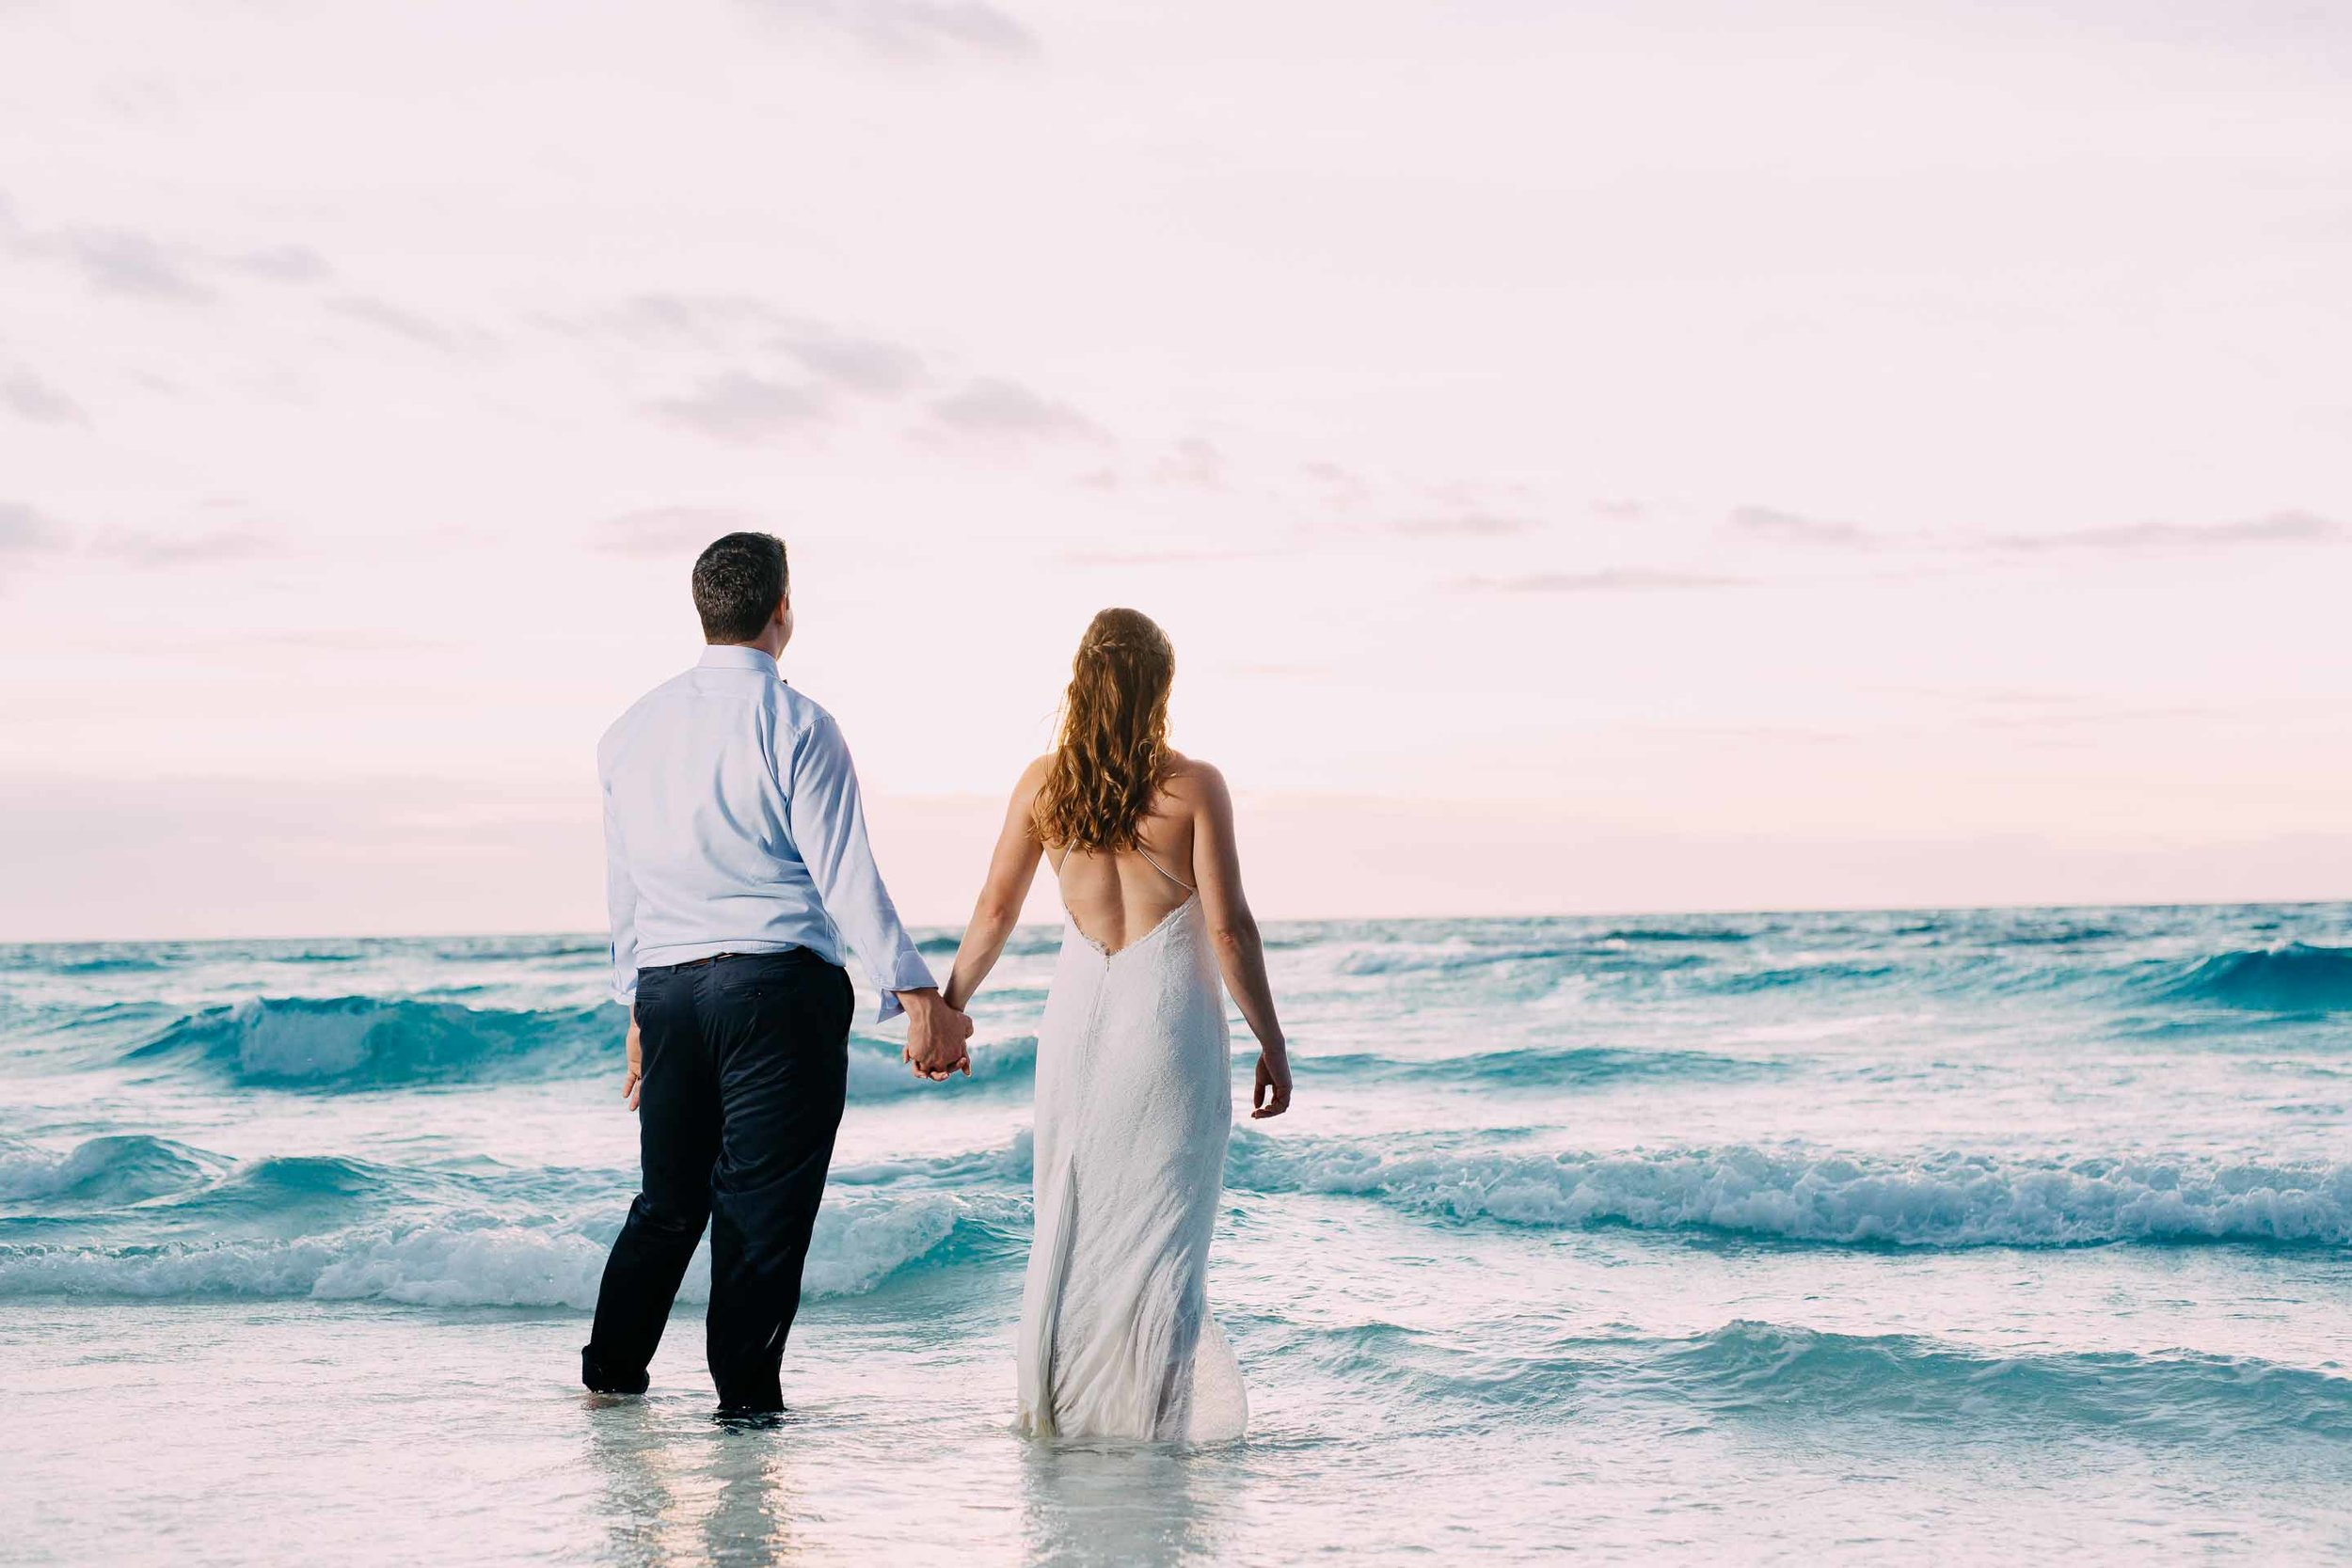 Newlyweds wade into the warm South Pacific Ocean moments after getting married on the sand quay.